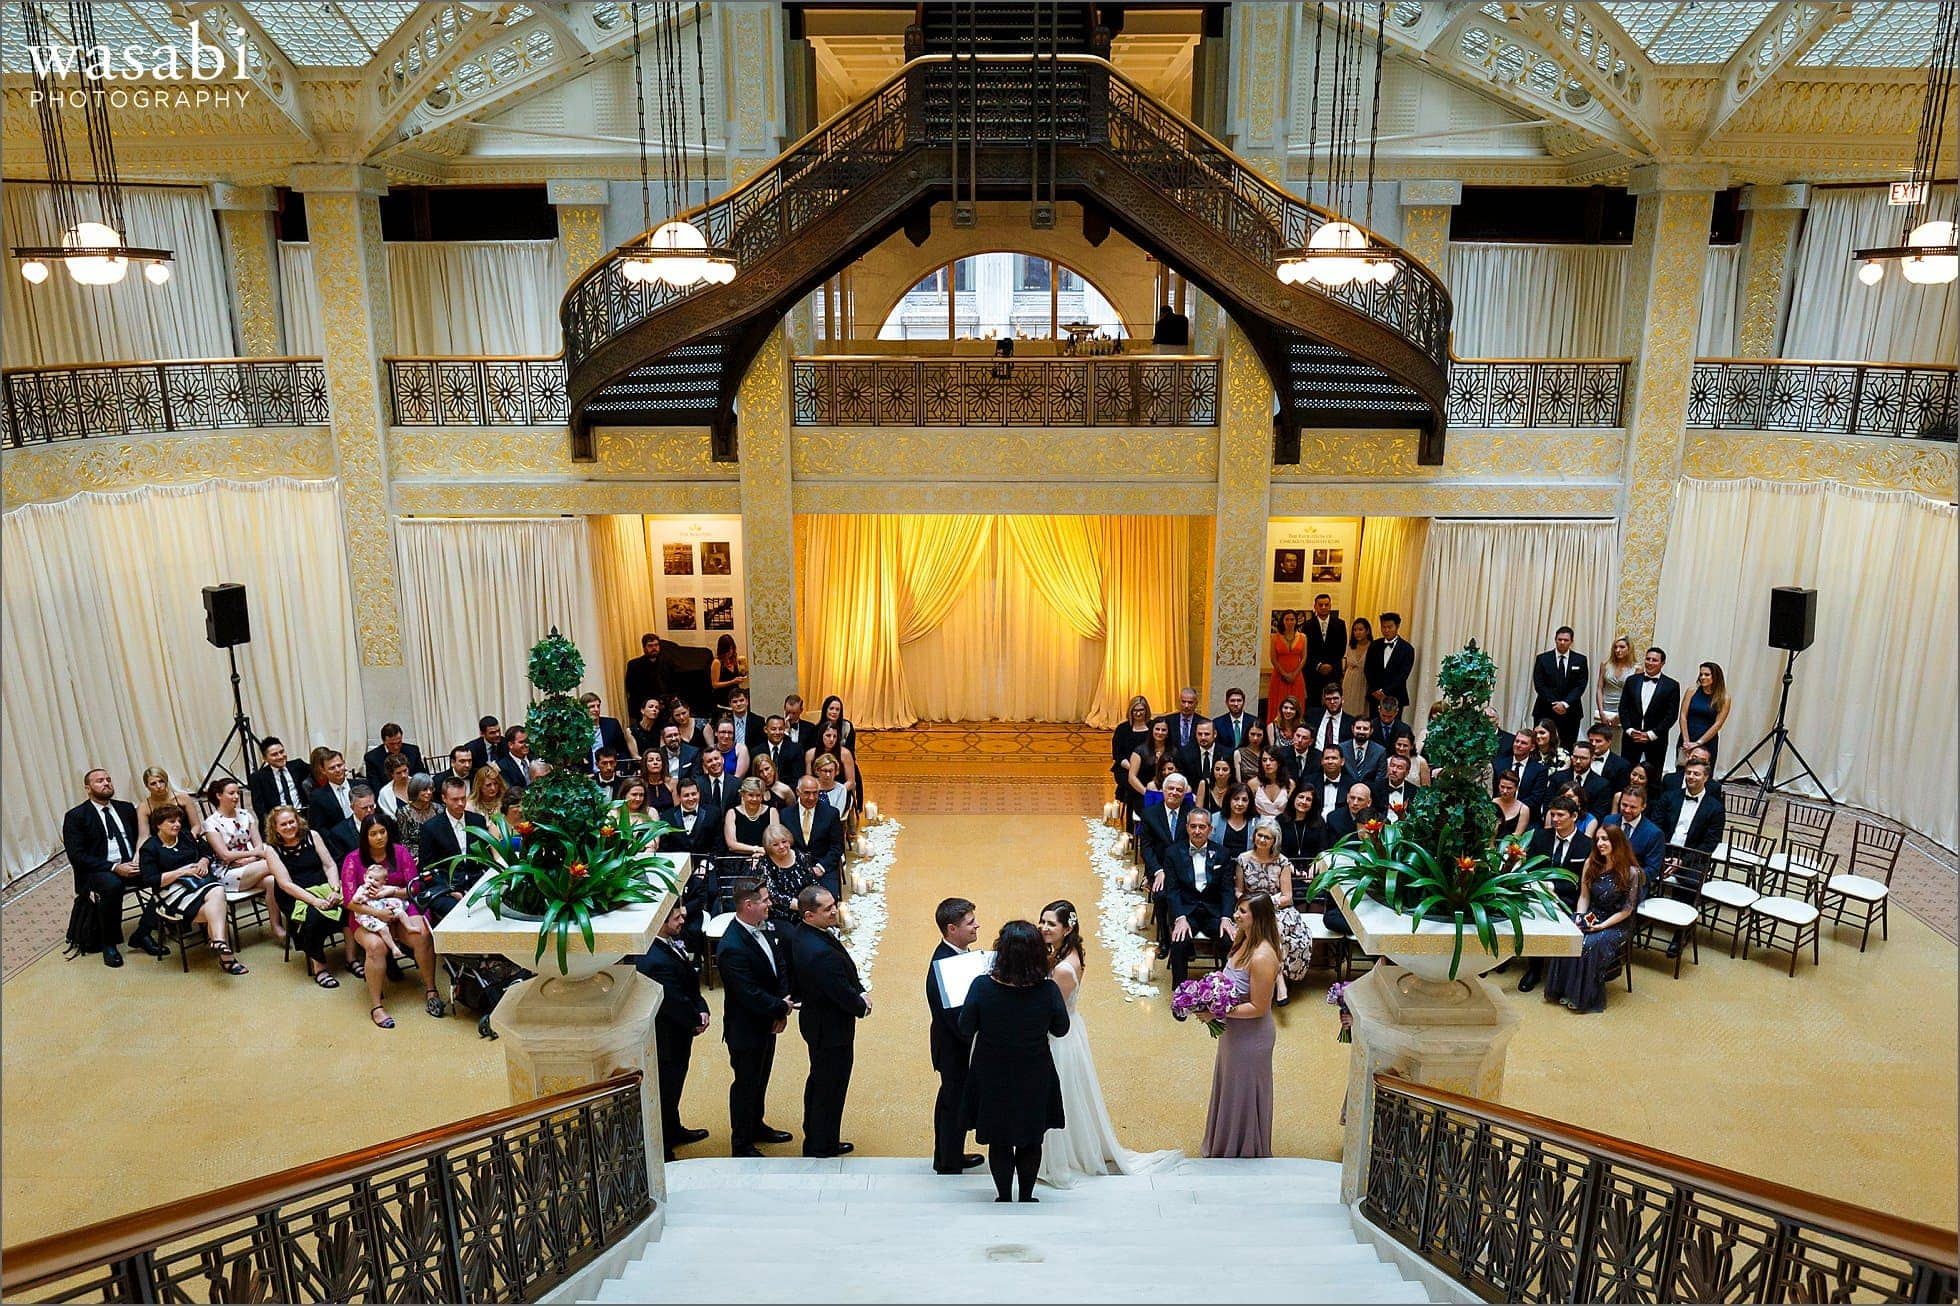 wide angle view of The Rookery wedding photos during ceremony at The Rookery Building in Chicago with stairs in forground and background